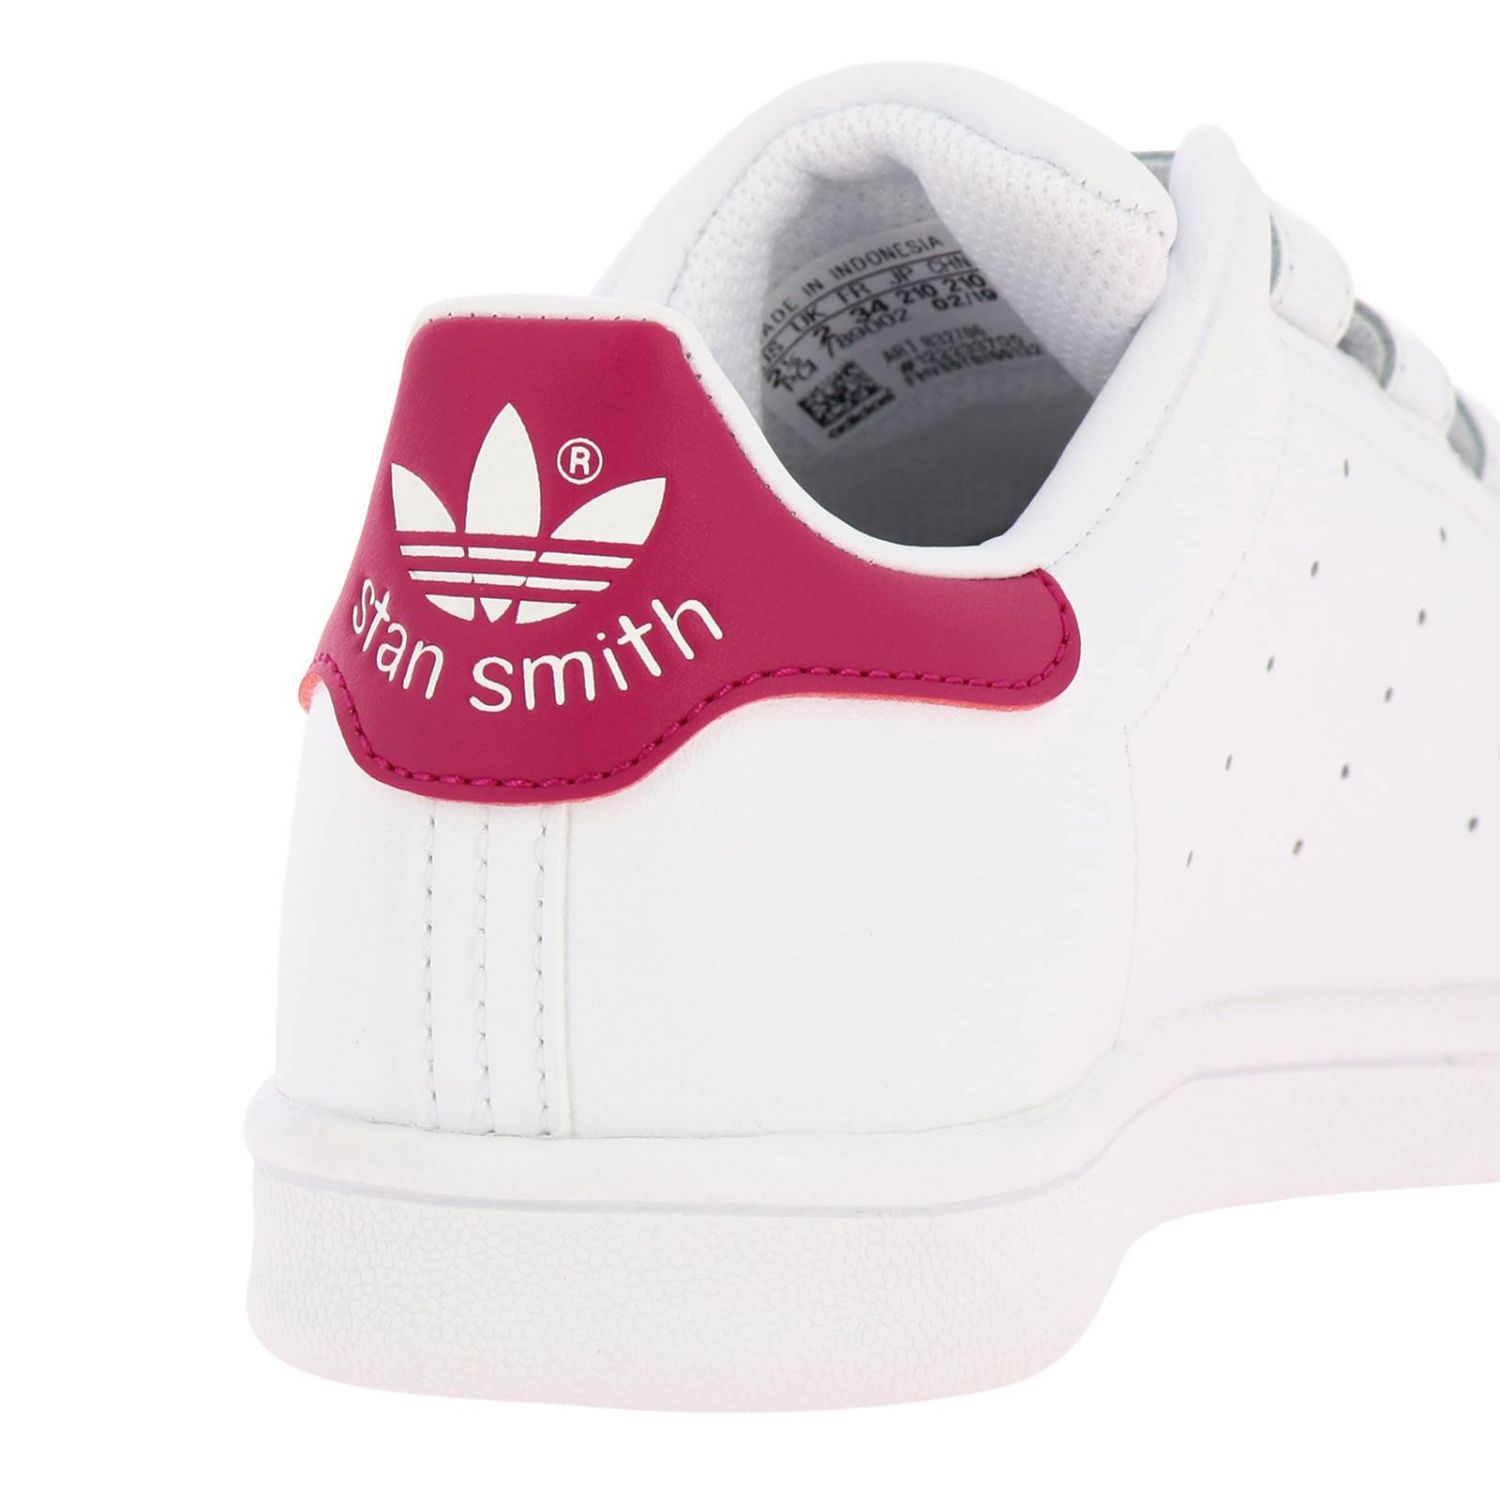 Shoes Adidas Originals: Stan Smith Adidas Originals Sneakers in smooth leather with colored heel white 4